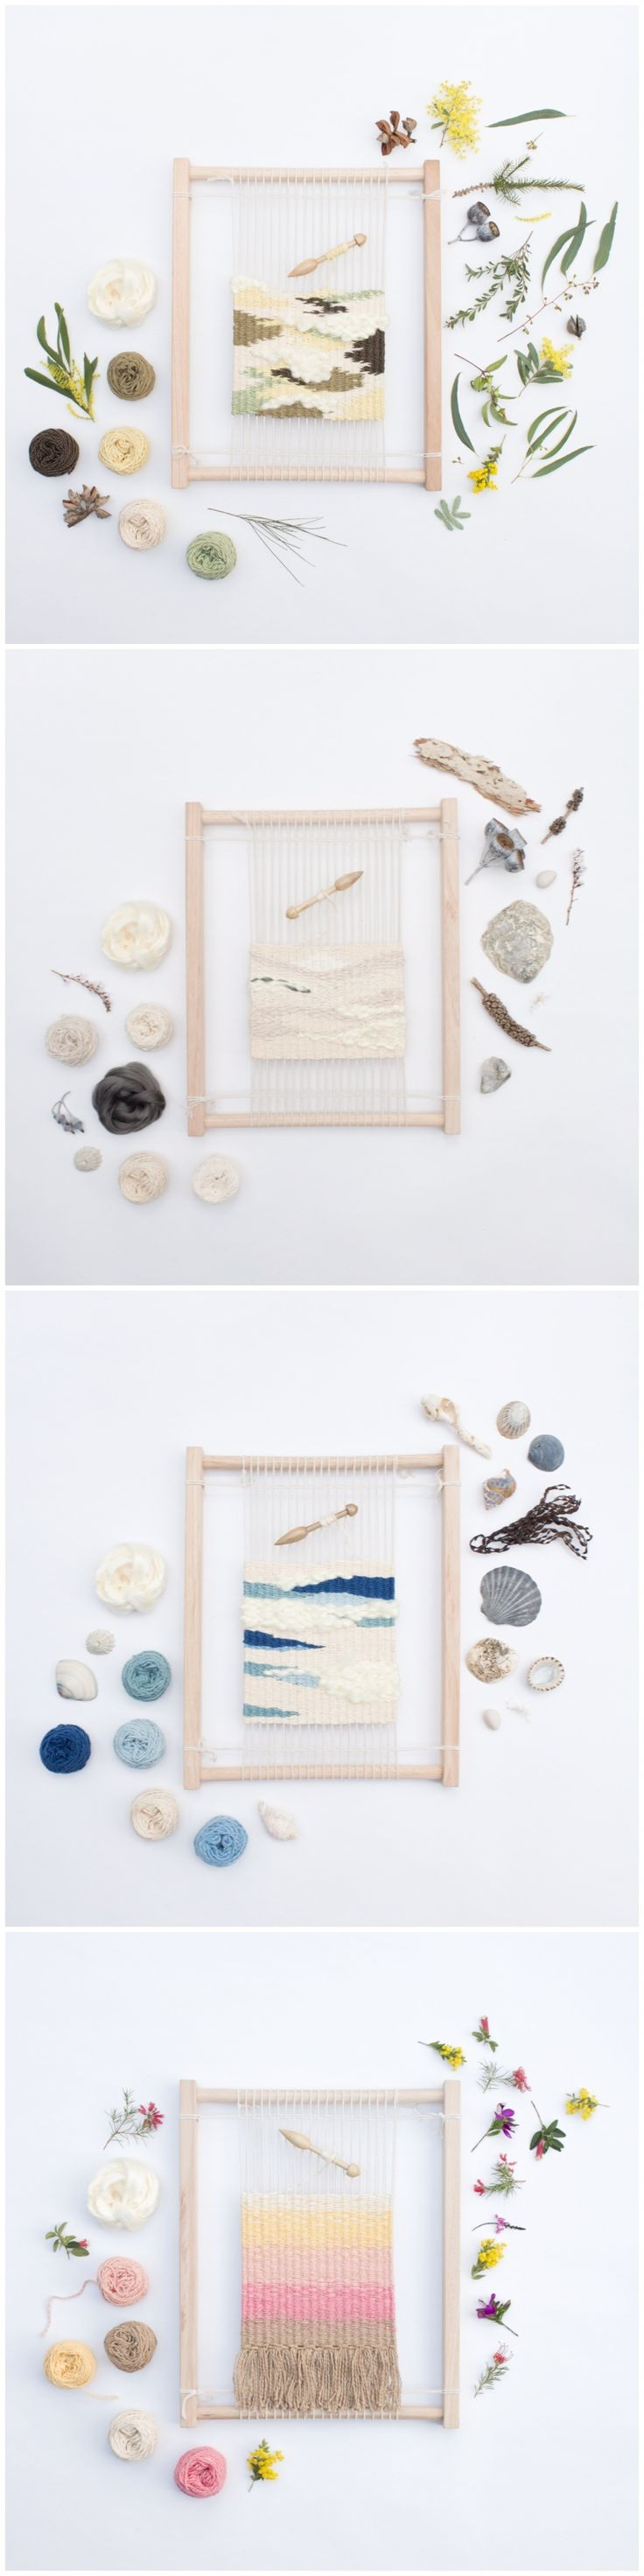 Limited edition Eco Weaving Kit by Alchemy. A handmade, 14 piece beginners weaving kit featuring an artisan made wooden loom and bobbin and natural dyed organic yarns. http://thealchemystore.bigcartel.com -- These are beautiful!